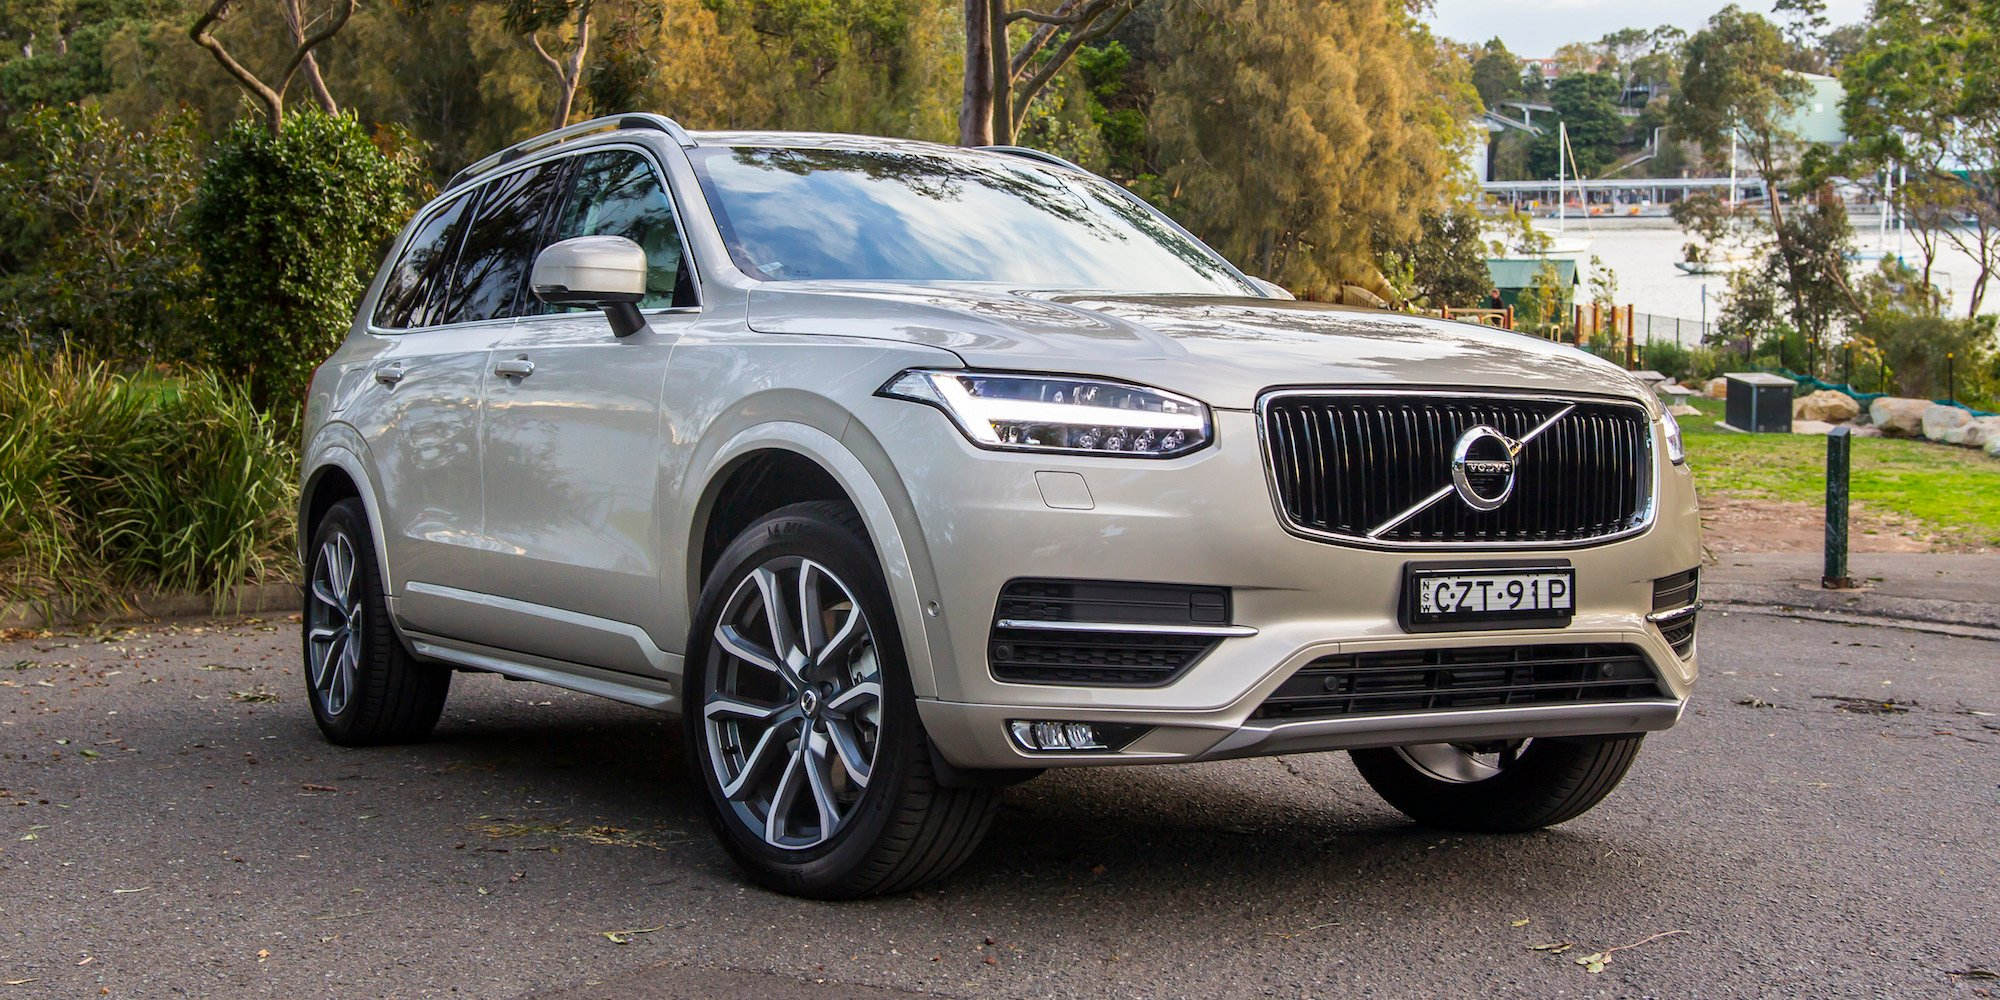 Fantastic 2016 Volvo XC90 D5 Momentum Review  CarAdvice